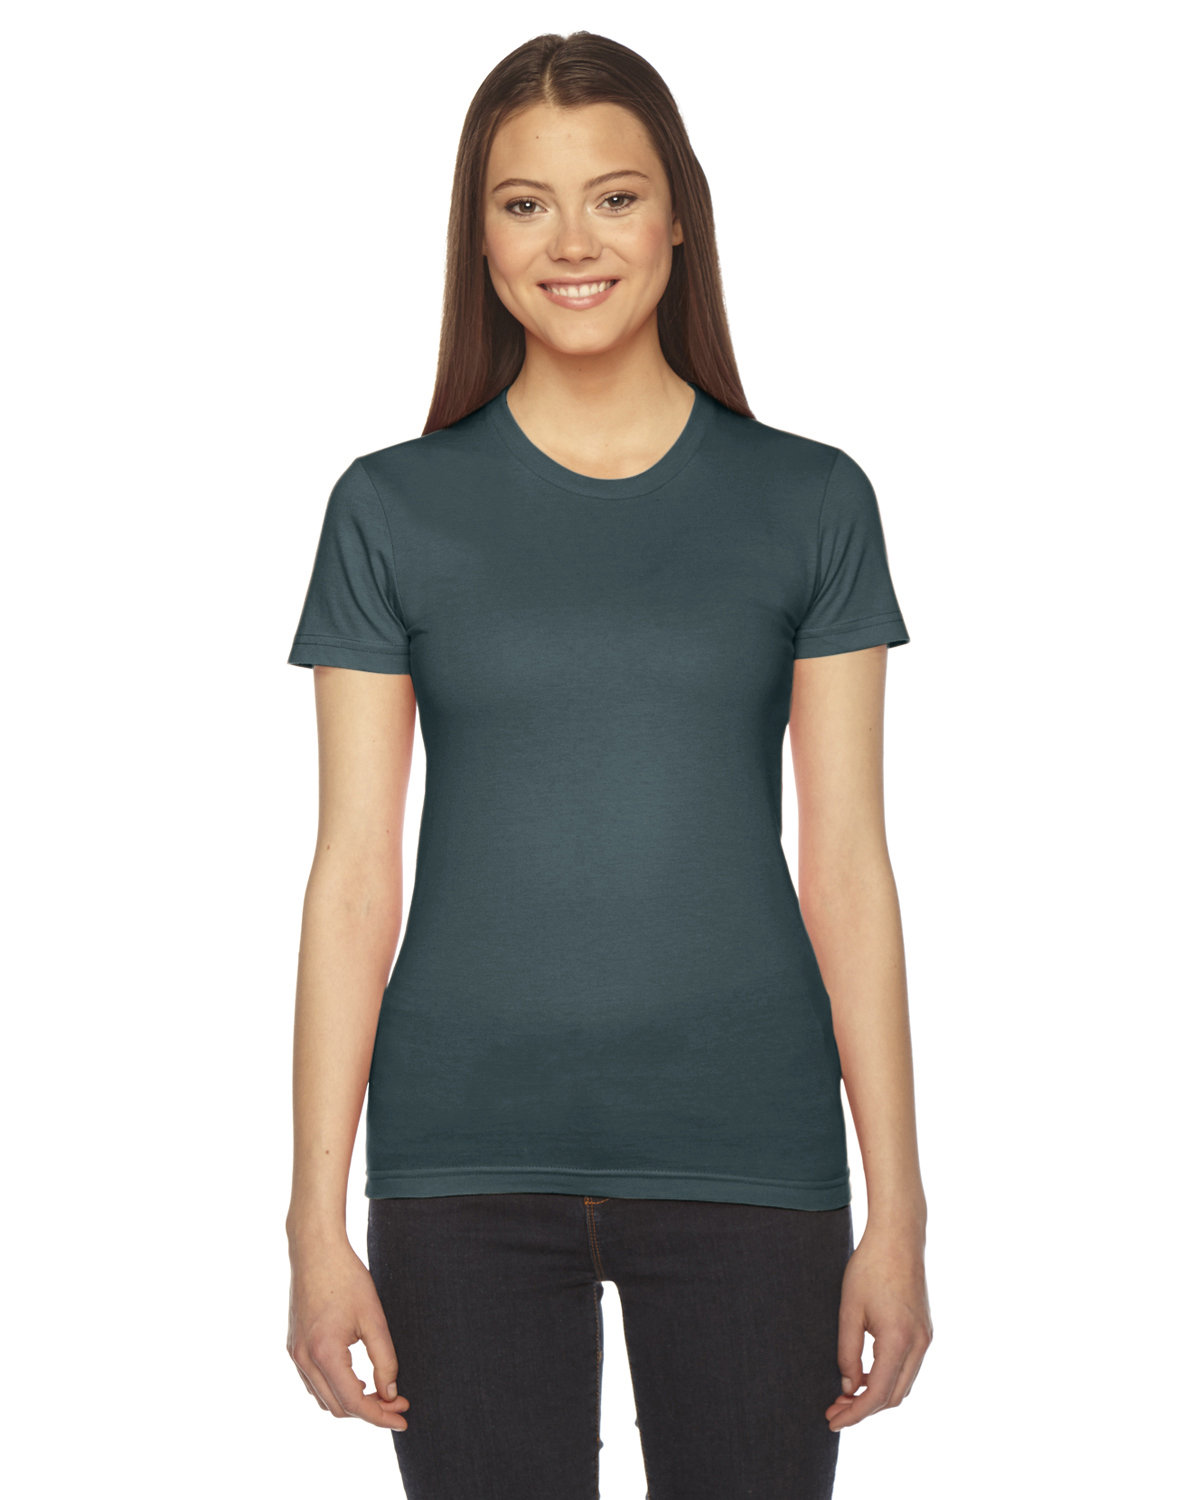 American Apparel Ladies' Fine Jersey Short-Sleeve T-Shirt FOREST